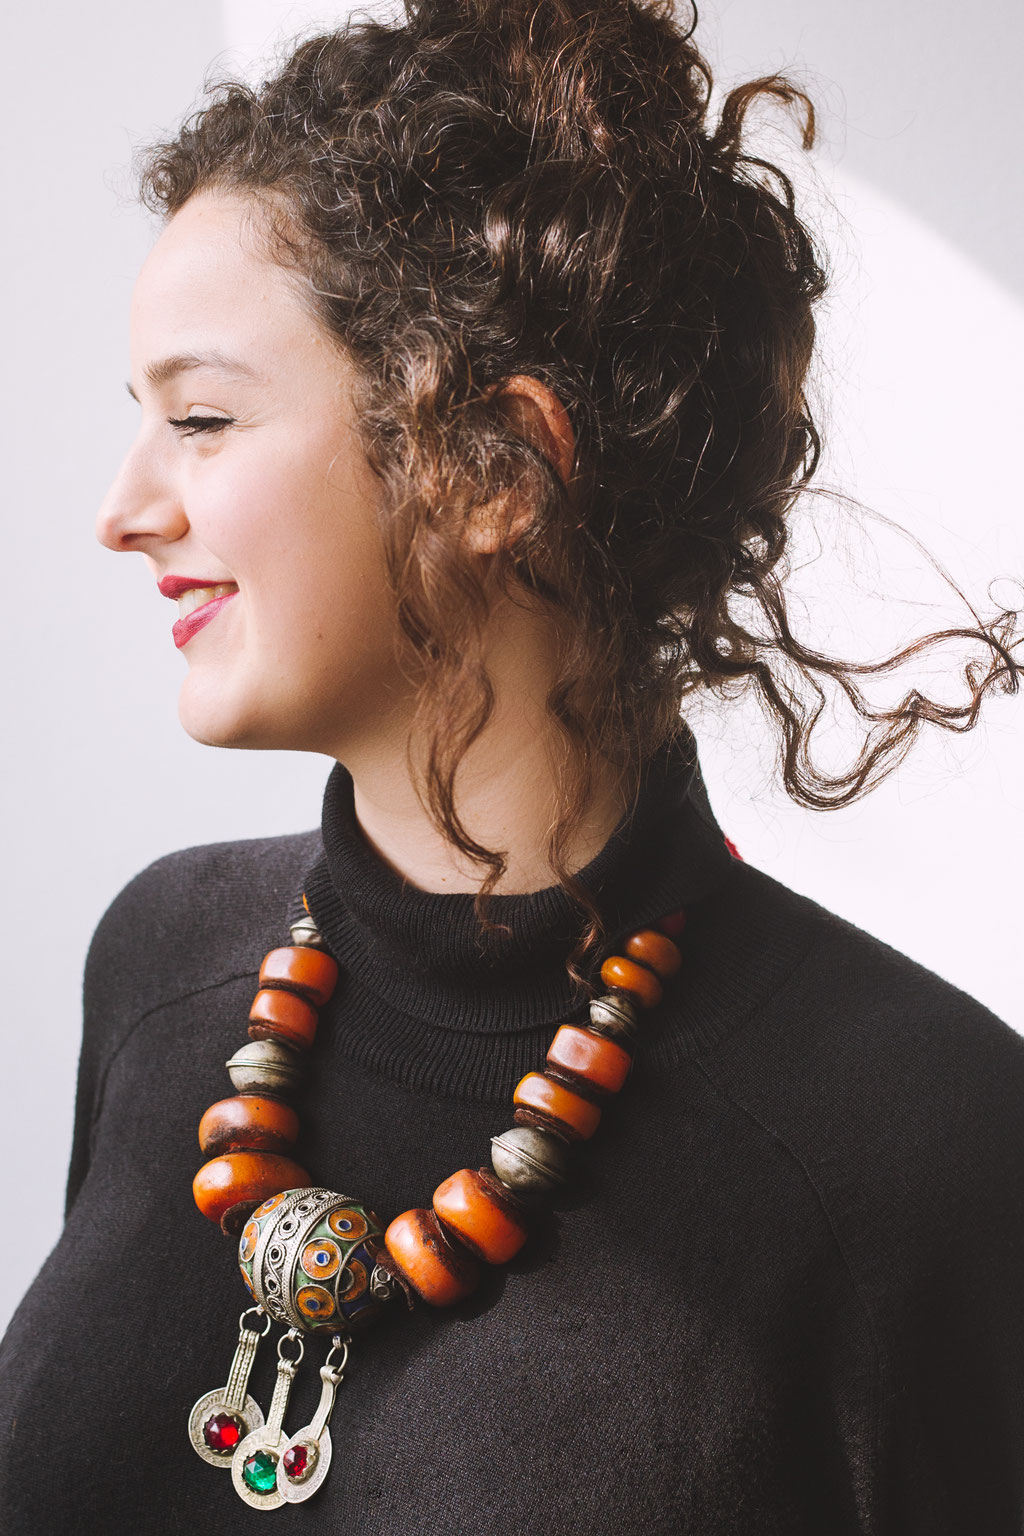 Rotterdam based recording & performing artist Roufaida wearing Stones Stories necklace photographed by Landa Penders